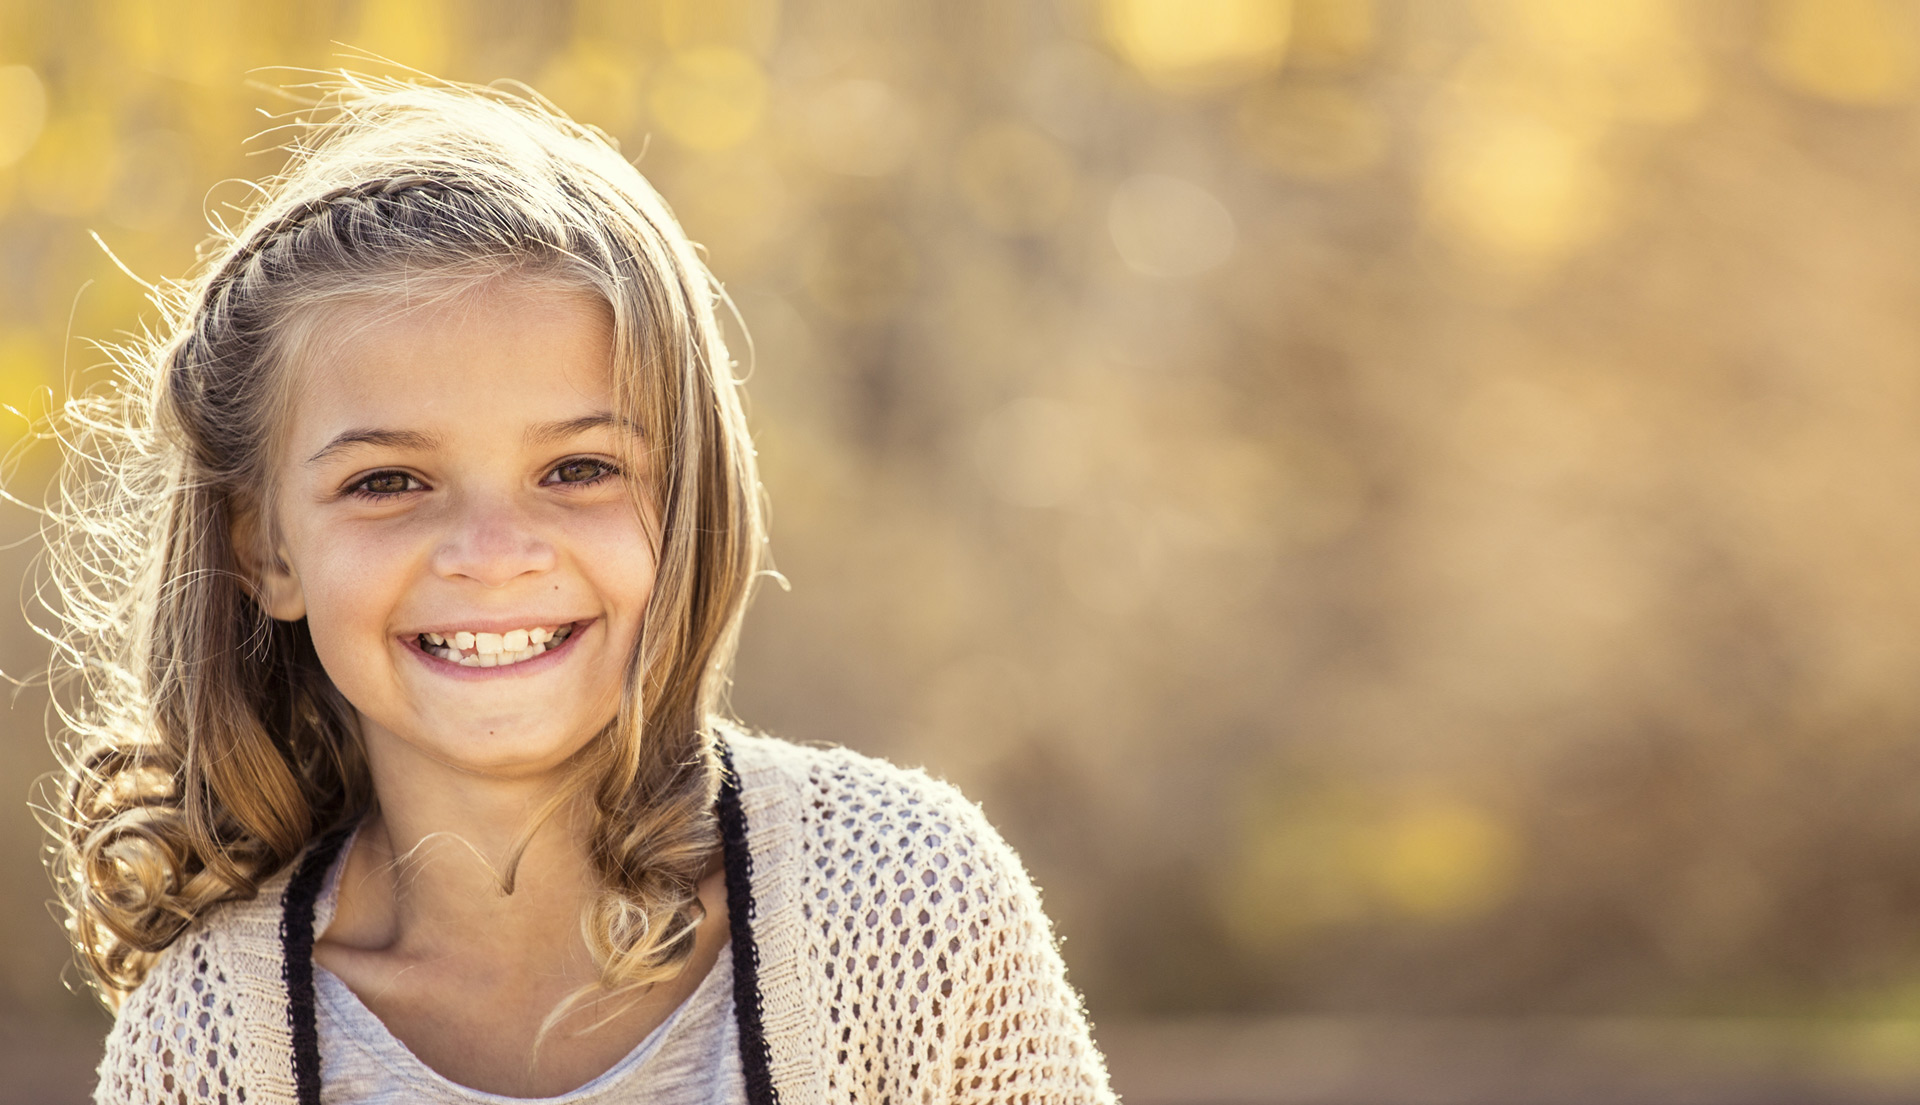 Young girl smiling with healthy teeth